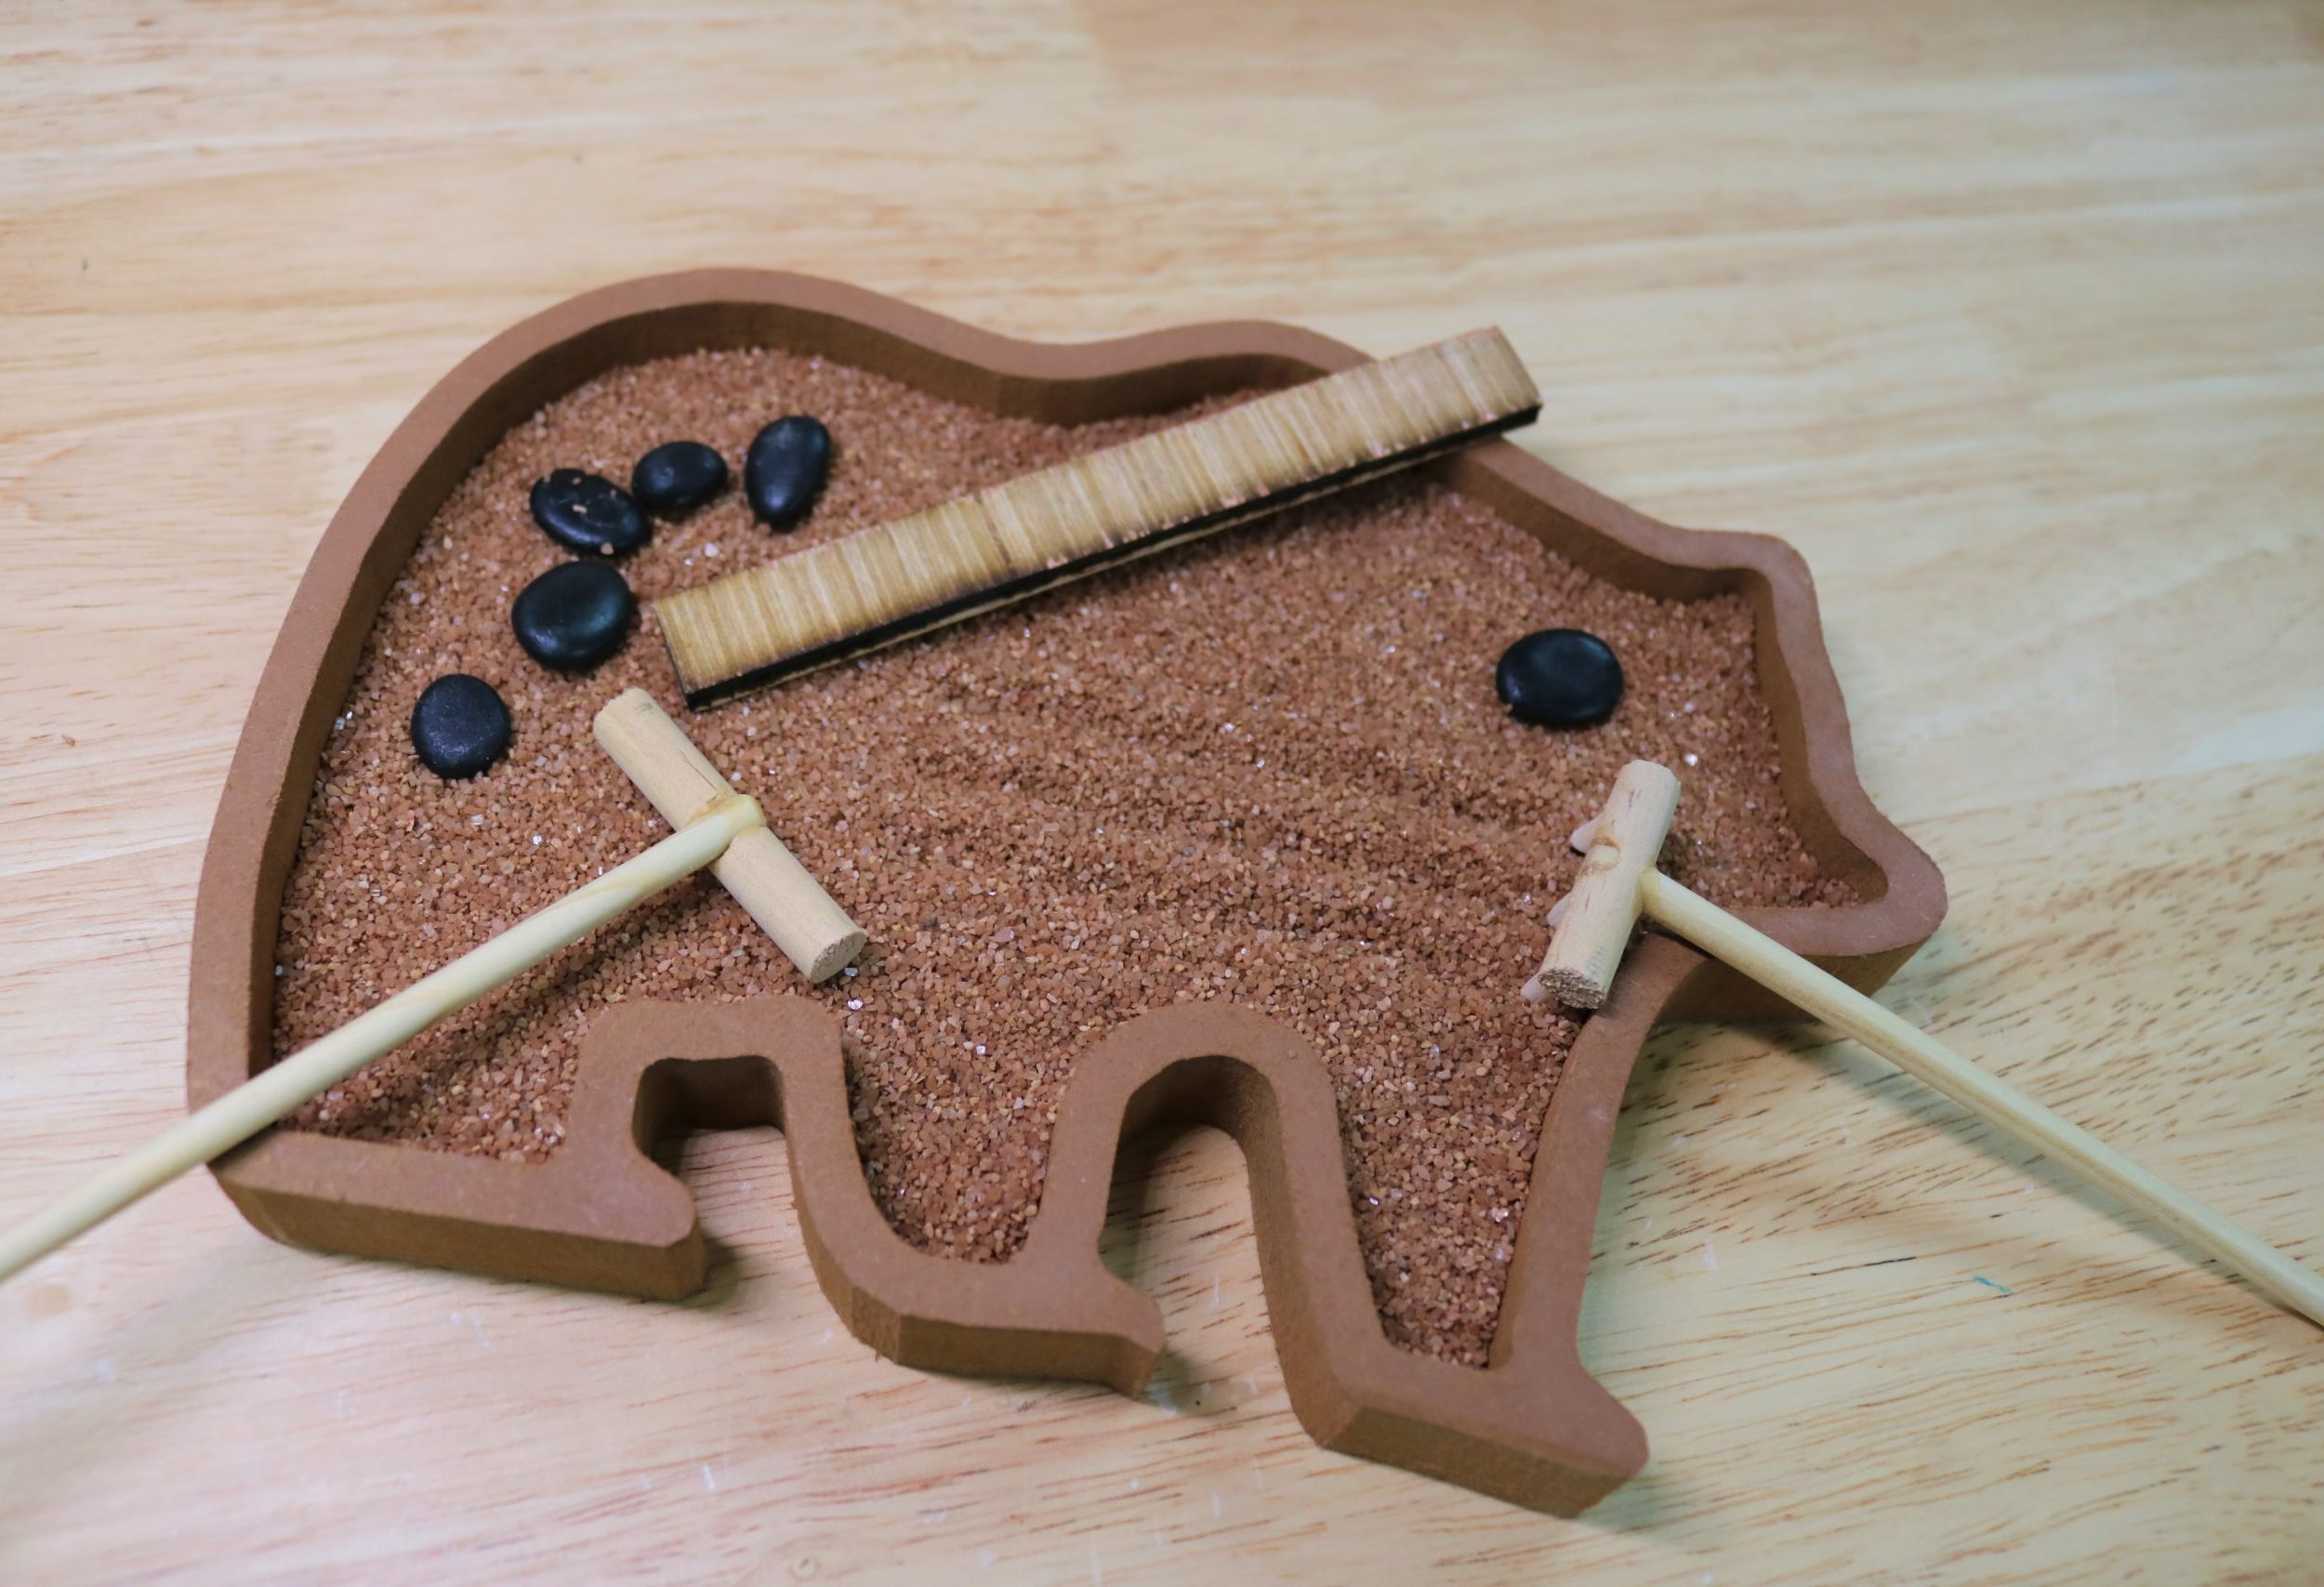 Bear Zen Garden – Animal Themed Zen Garden